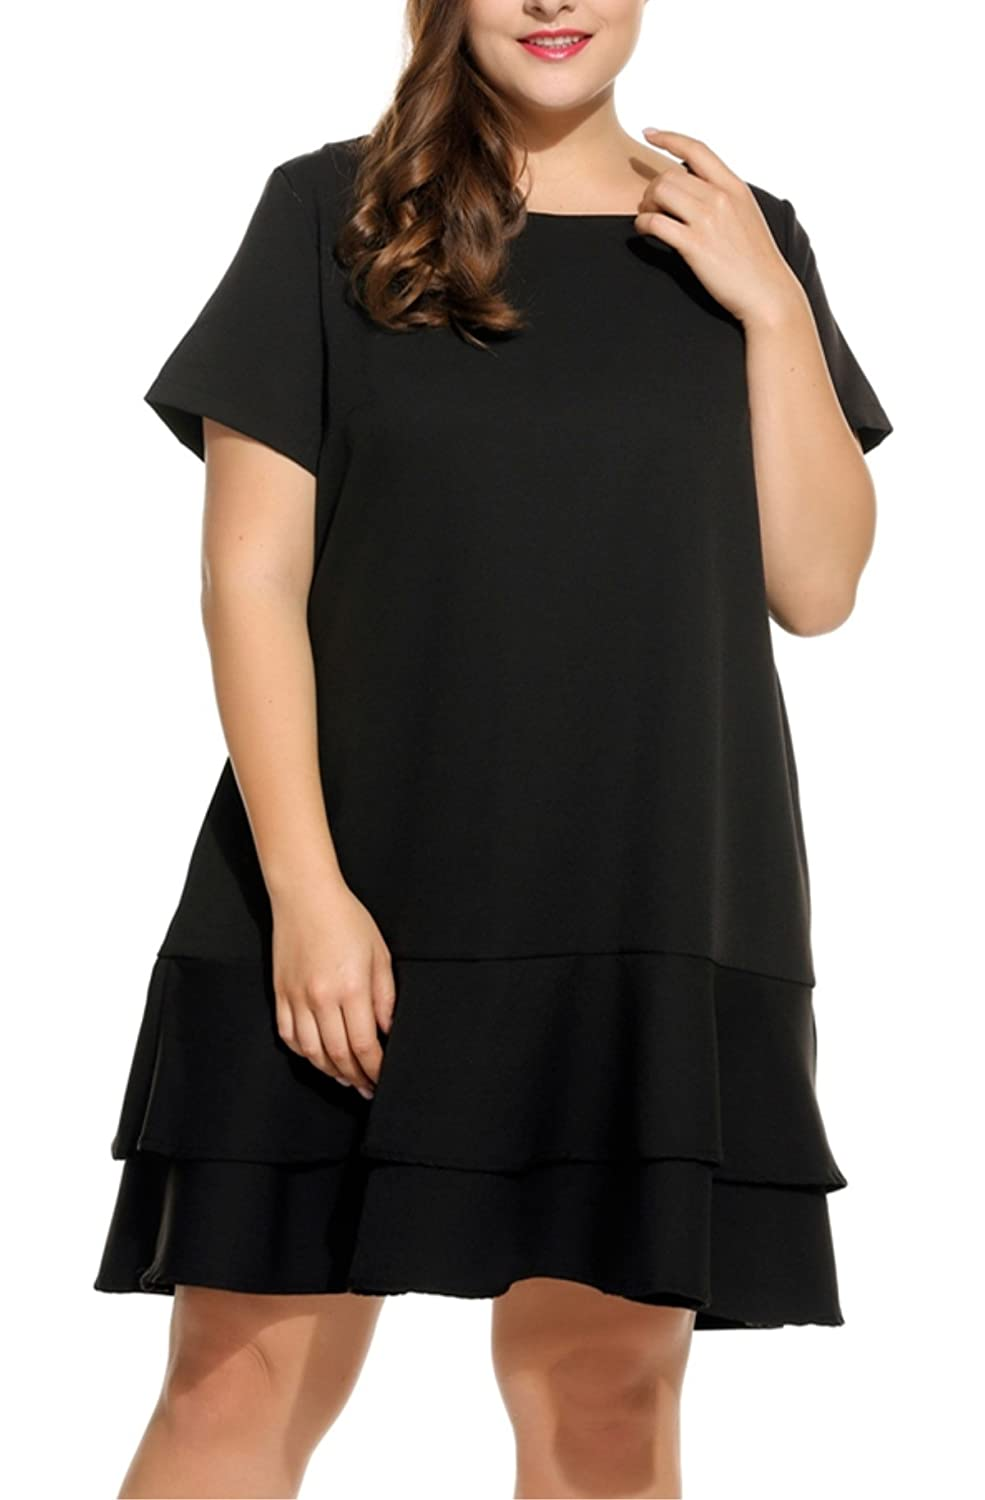 1920s Plus Size Dresses & Quality Costumes Kancystore Women Plus Size Short Sleeve Round Neck Solid Double Layer Ruffles Hem Dress L-4XL $25.99 AT vintagedancer.com